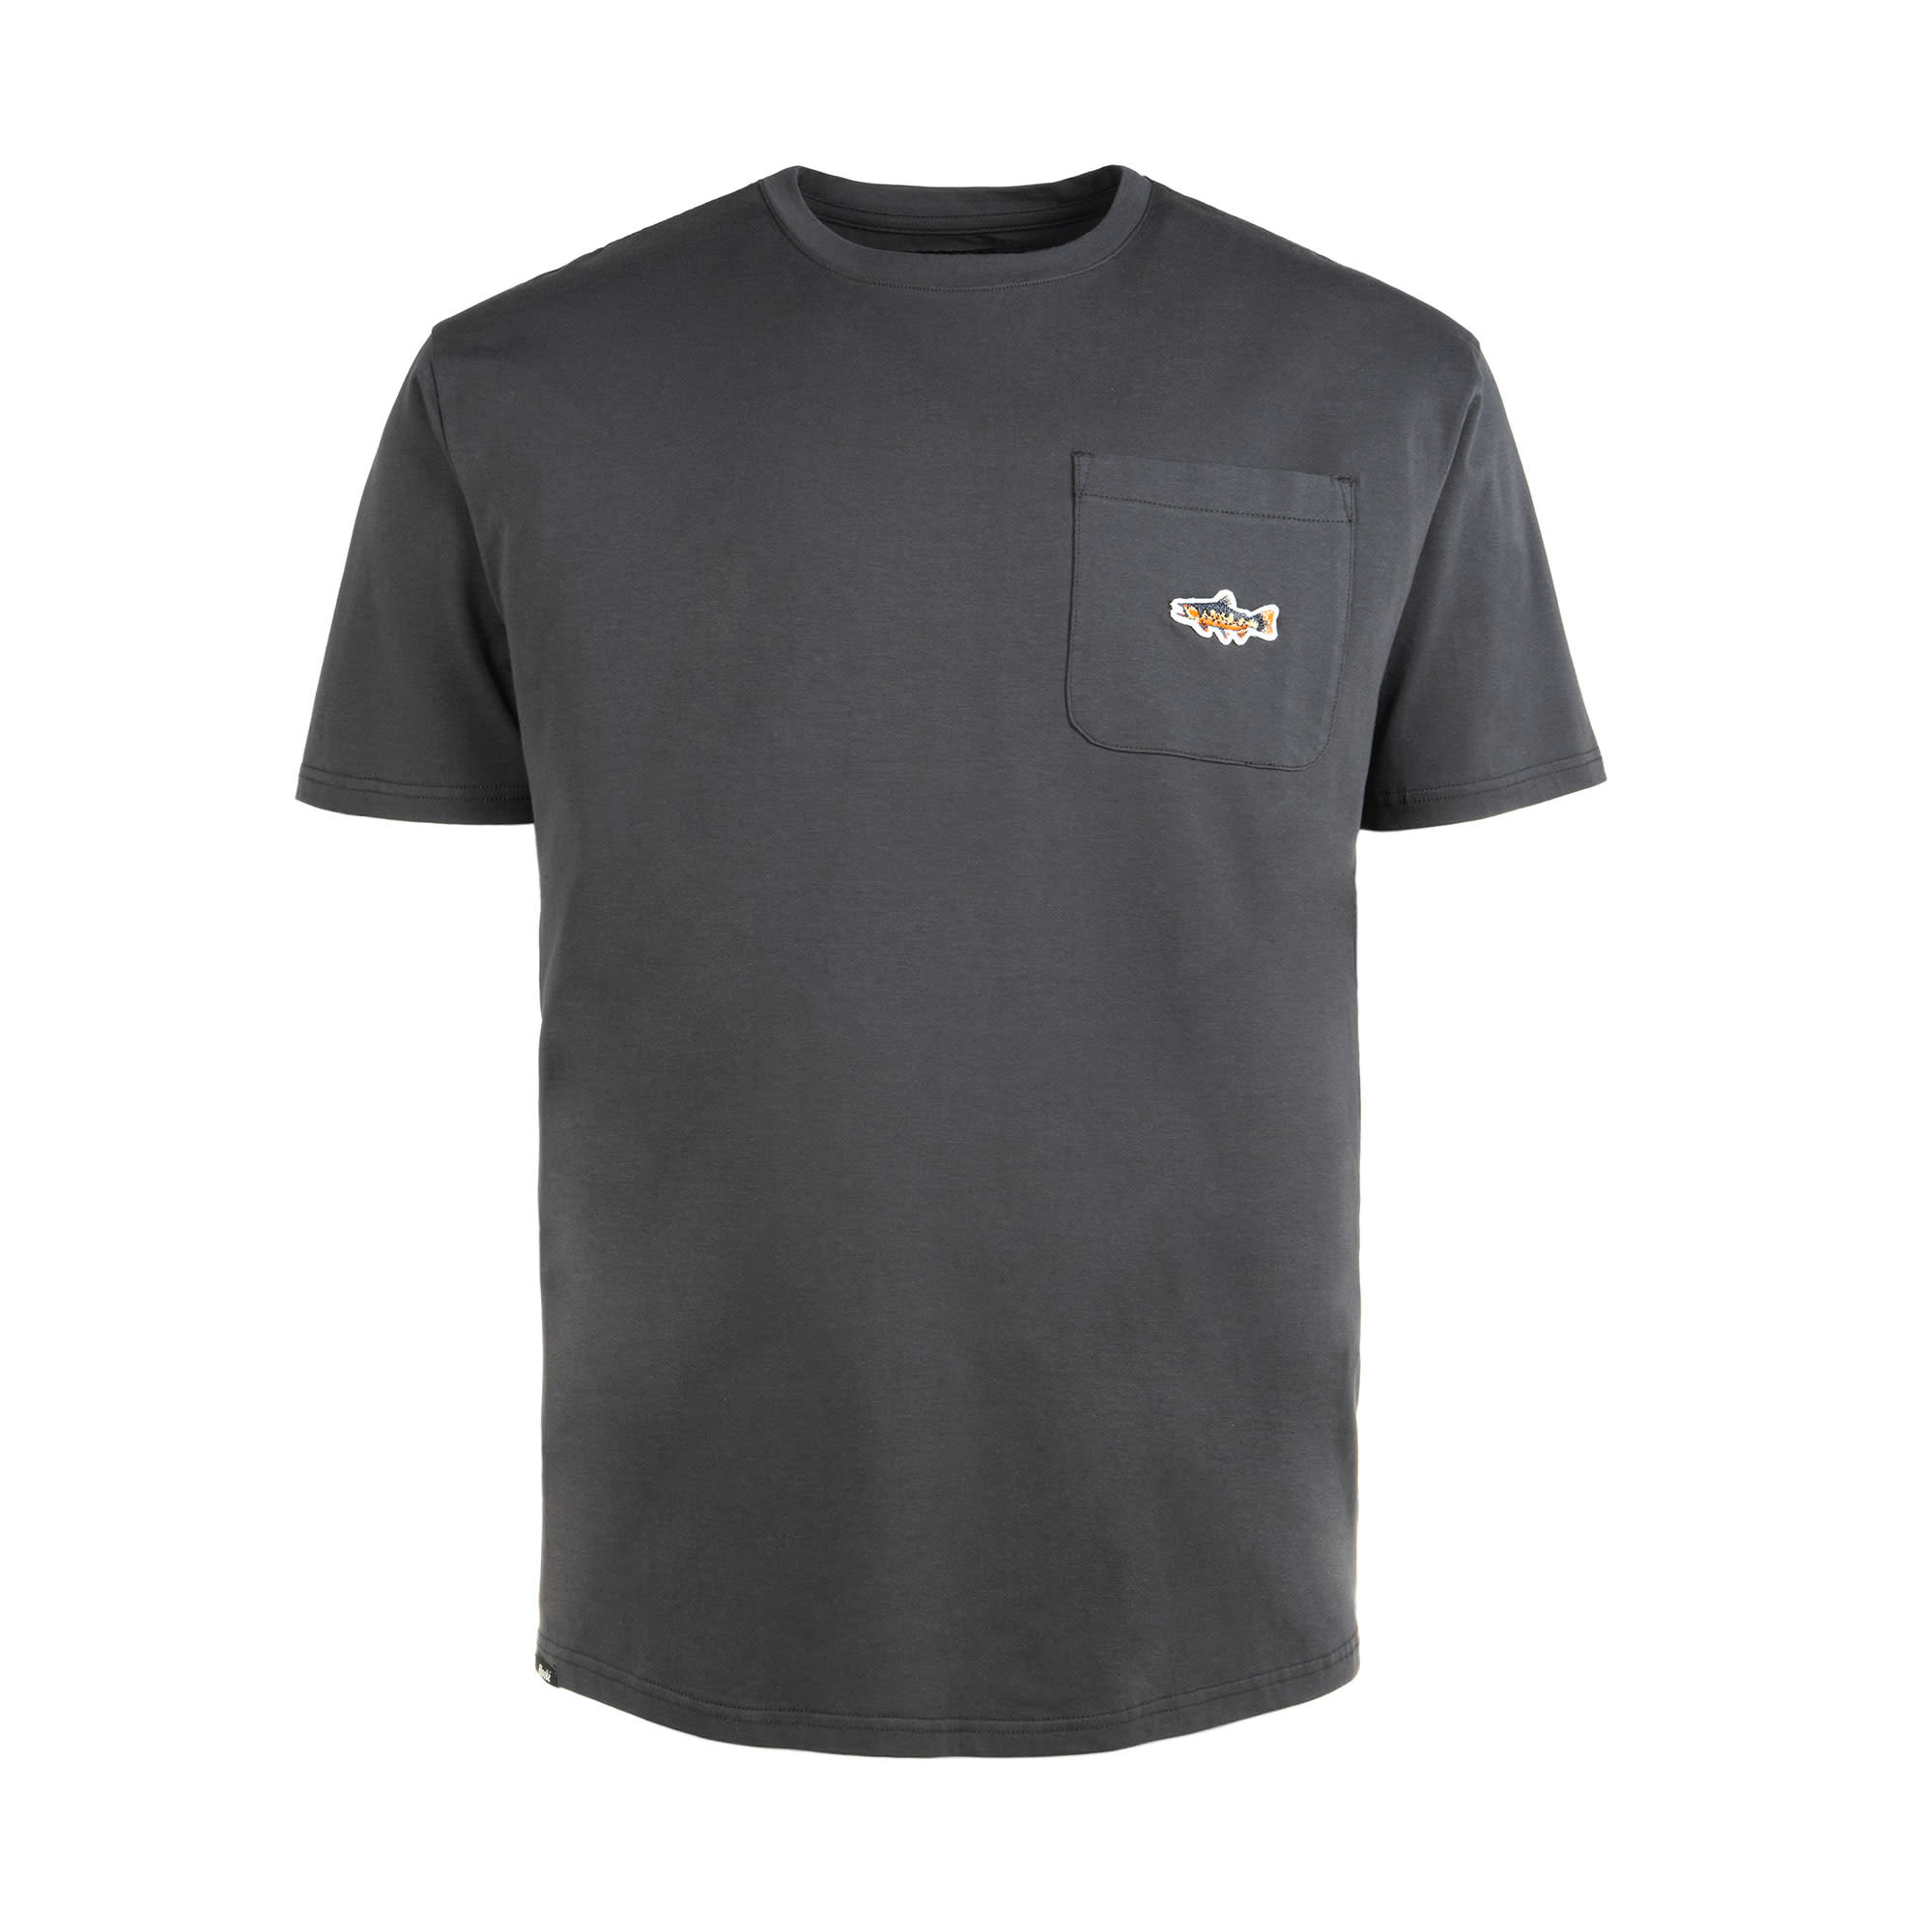 Trout Pocket T-Shirt Charcoal